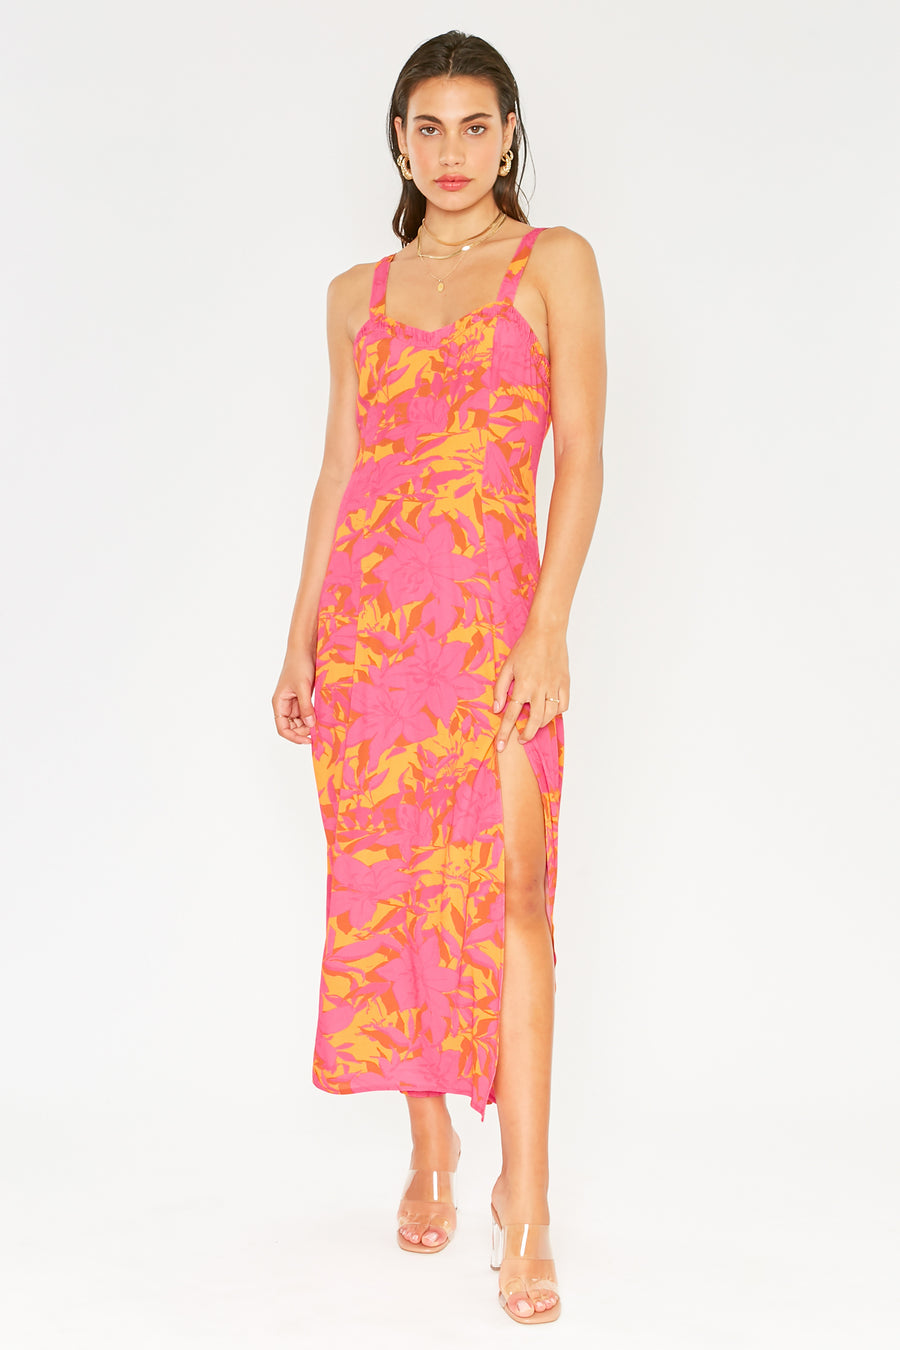 EVERETTE DRESS